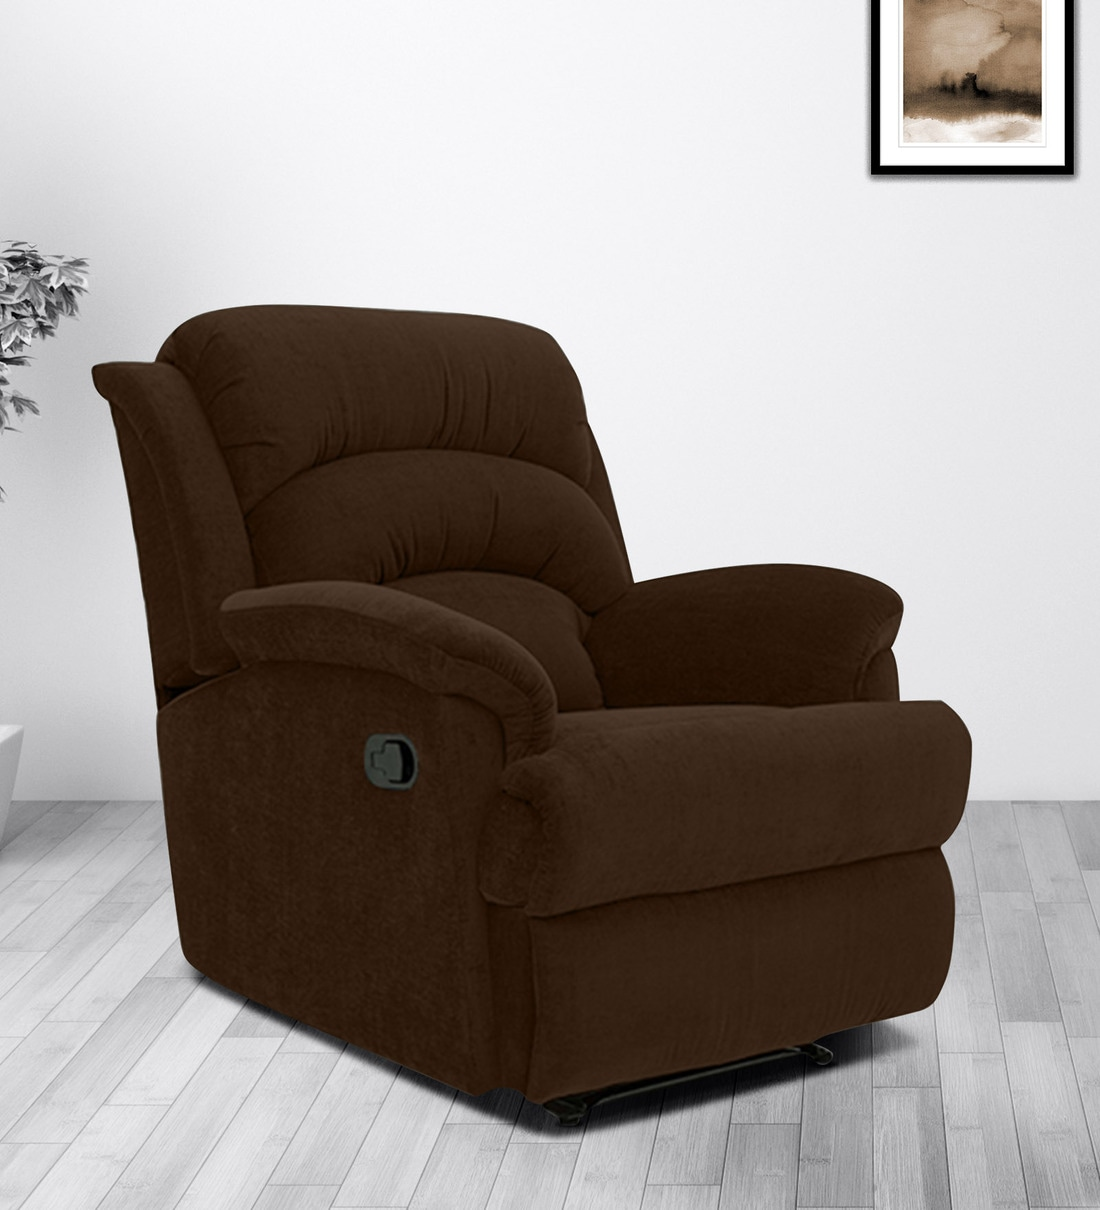 Buy Alexandria 1 Seater Manual Recliner In Brown Colour By Furnitech Online Manual 1 Seater Recliners Recliners Furniture Pepperfry Product